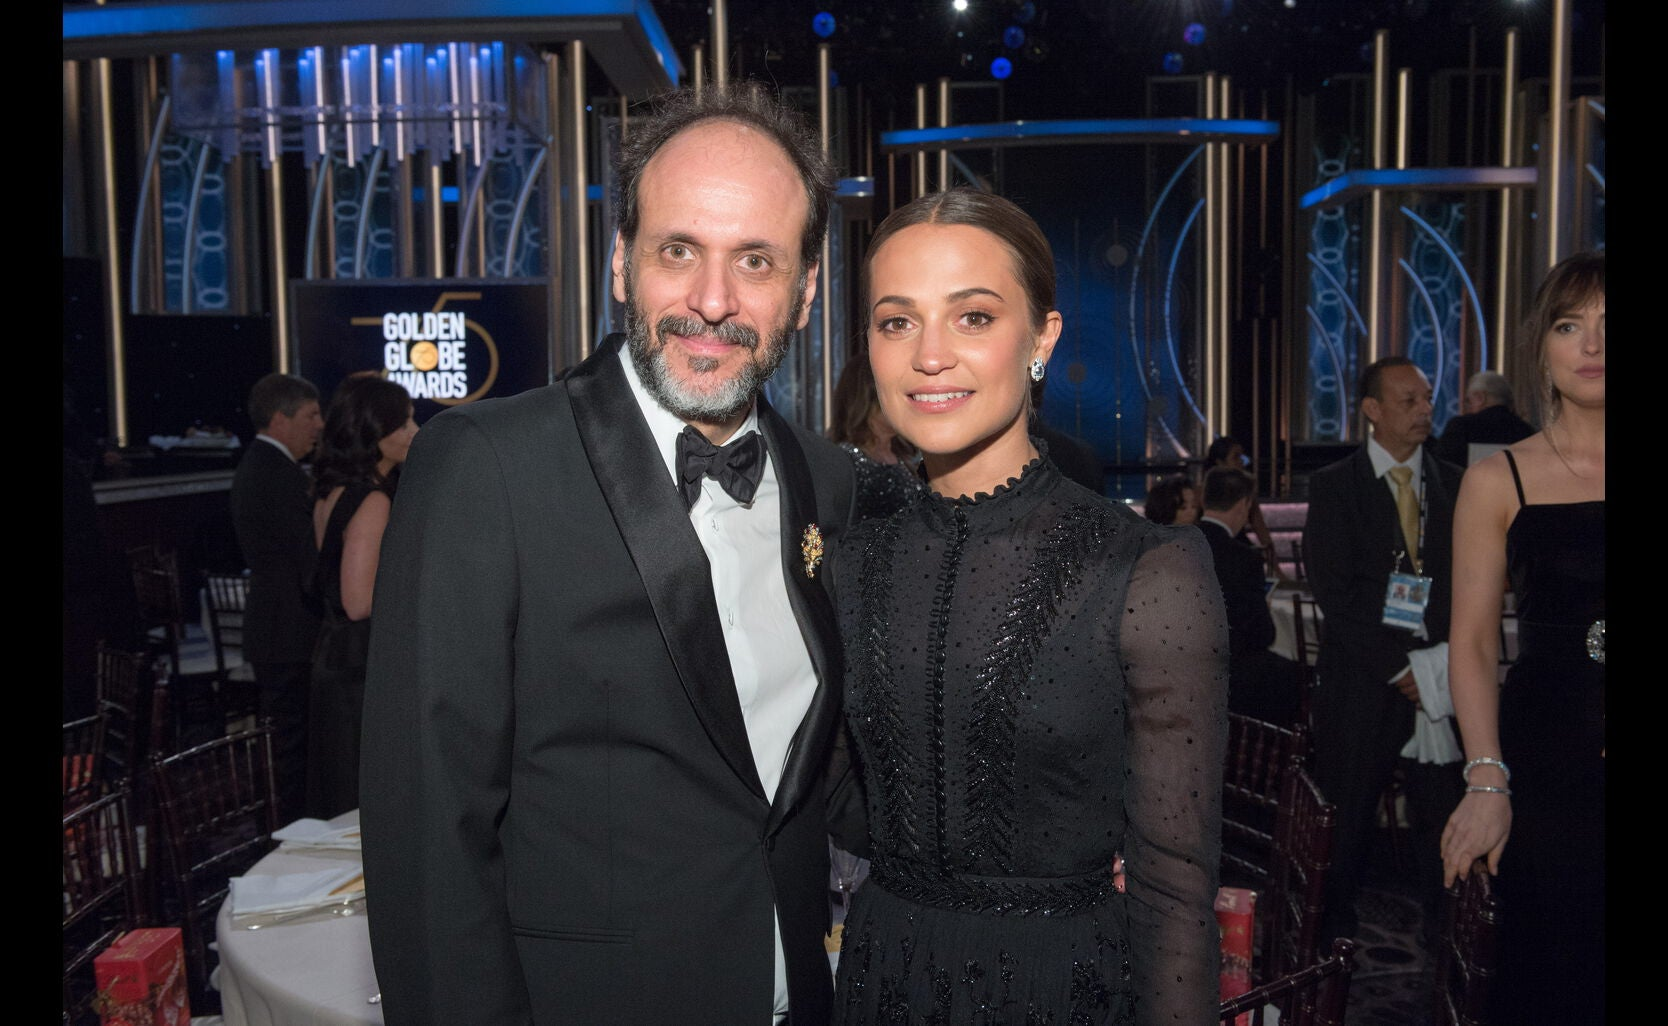 Director Luca Guadagnini, Actress ALicia Vikanfder